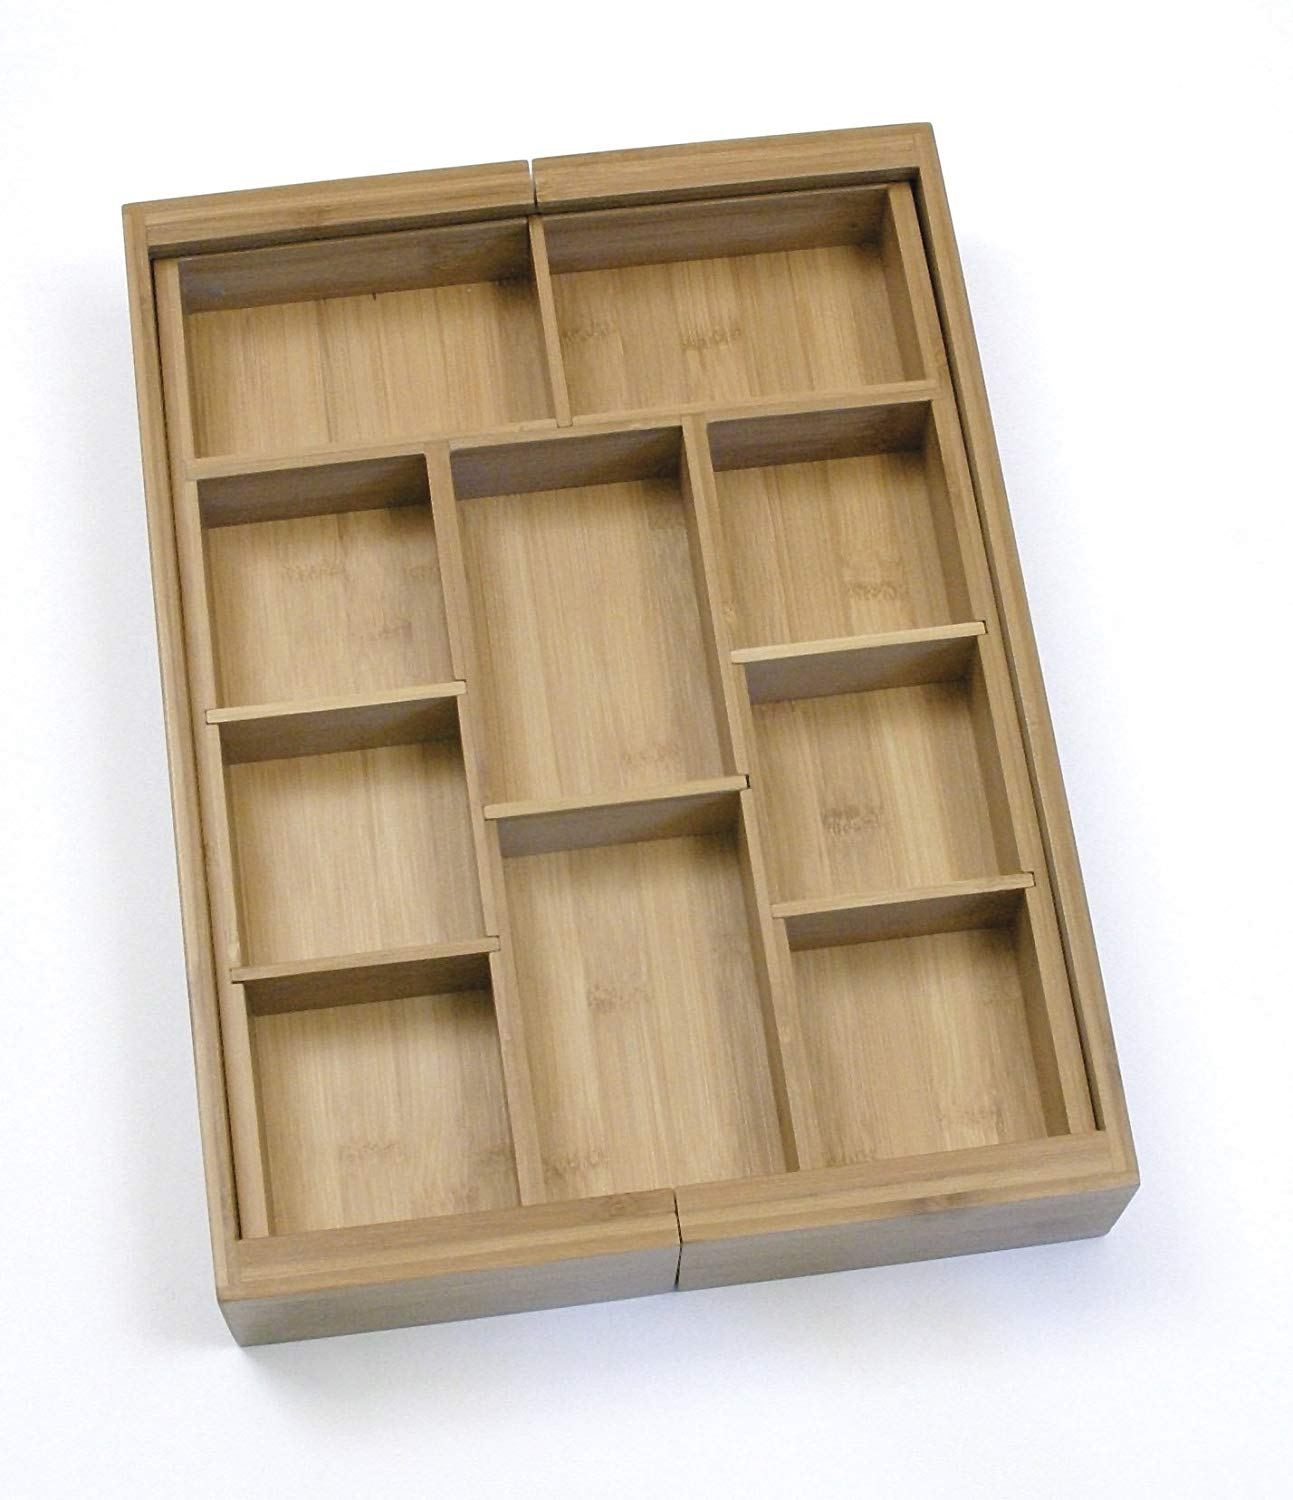 High Quality Bamboo Expandable Drawer Organizer With High Quality Bamboo Drwer Organizer 5